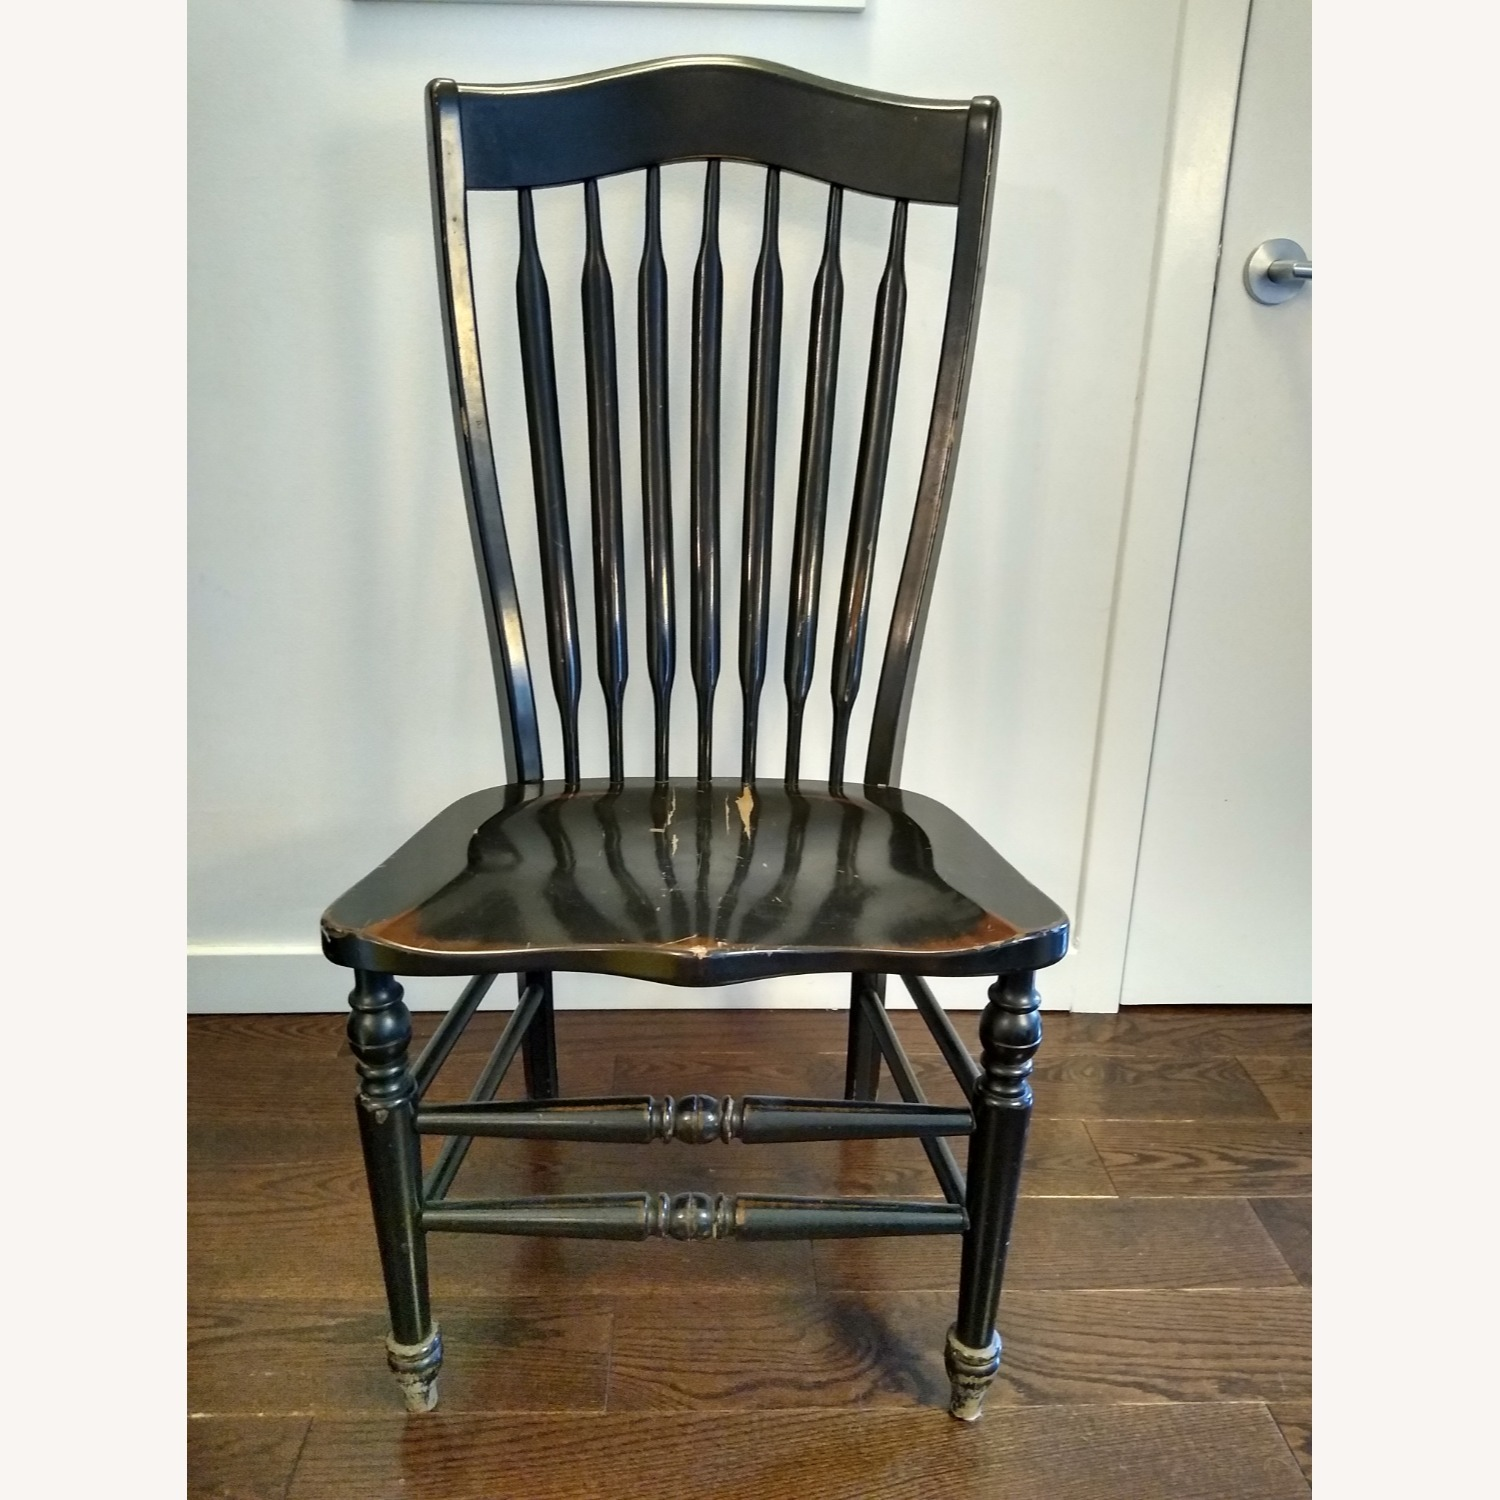 Five Vintage Nichols & Stone Windsor Chairs - image-10